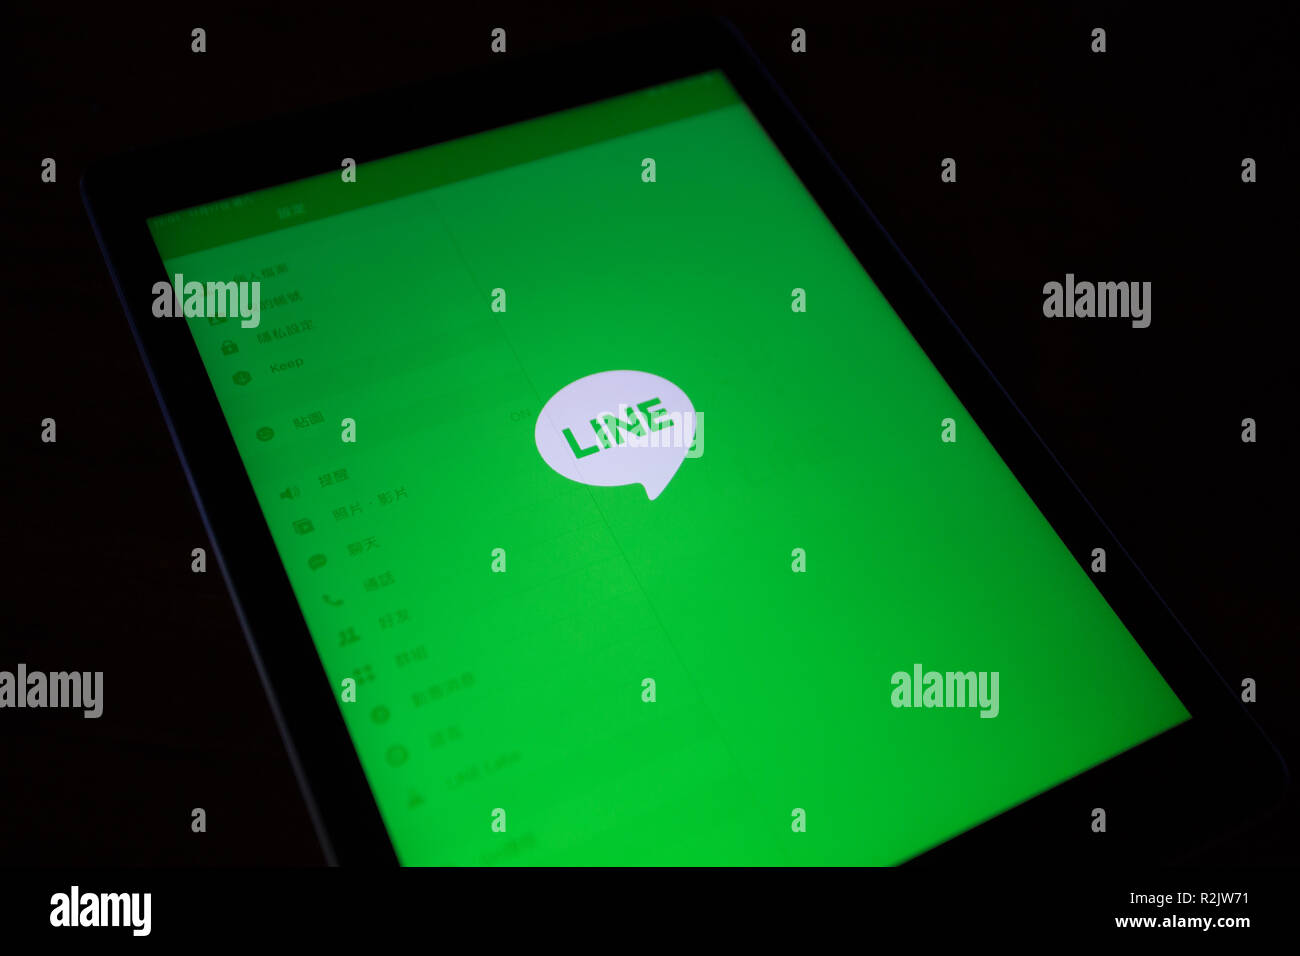 LINE app for instant communications, seen on Apple iPad Air device screen - Stock Image